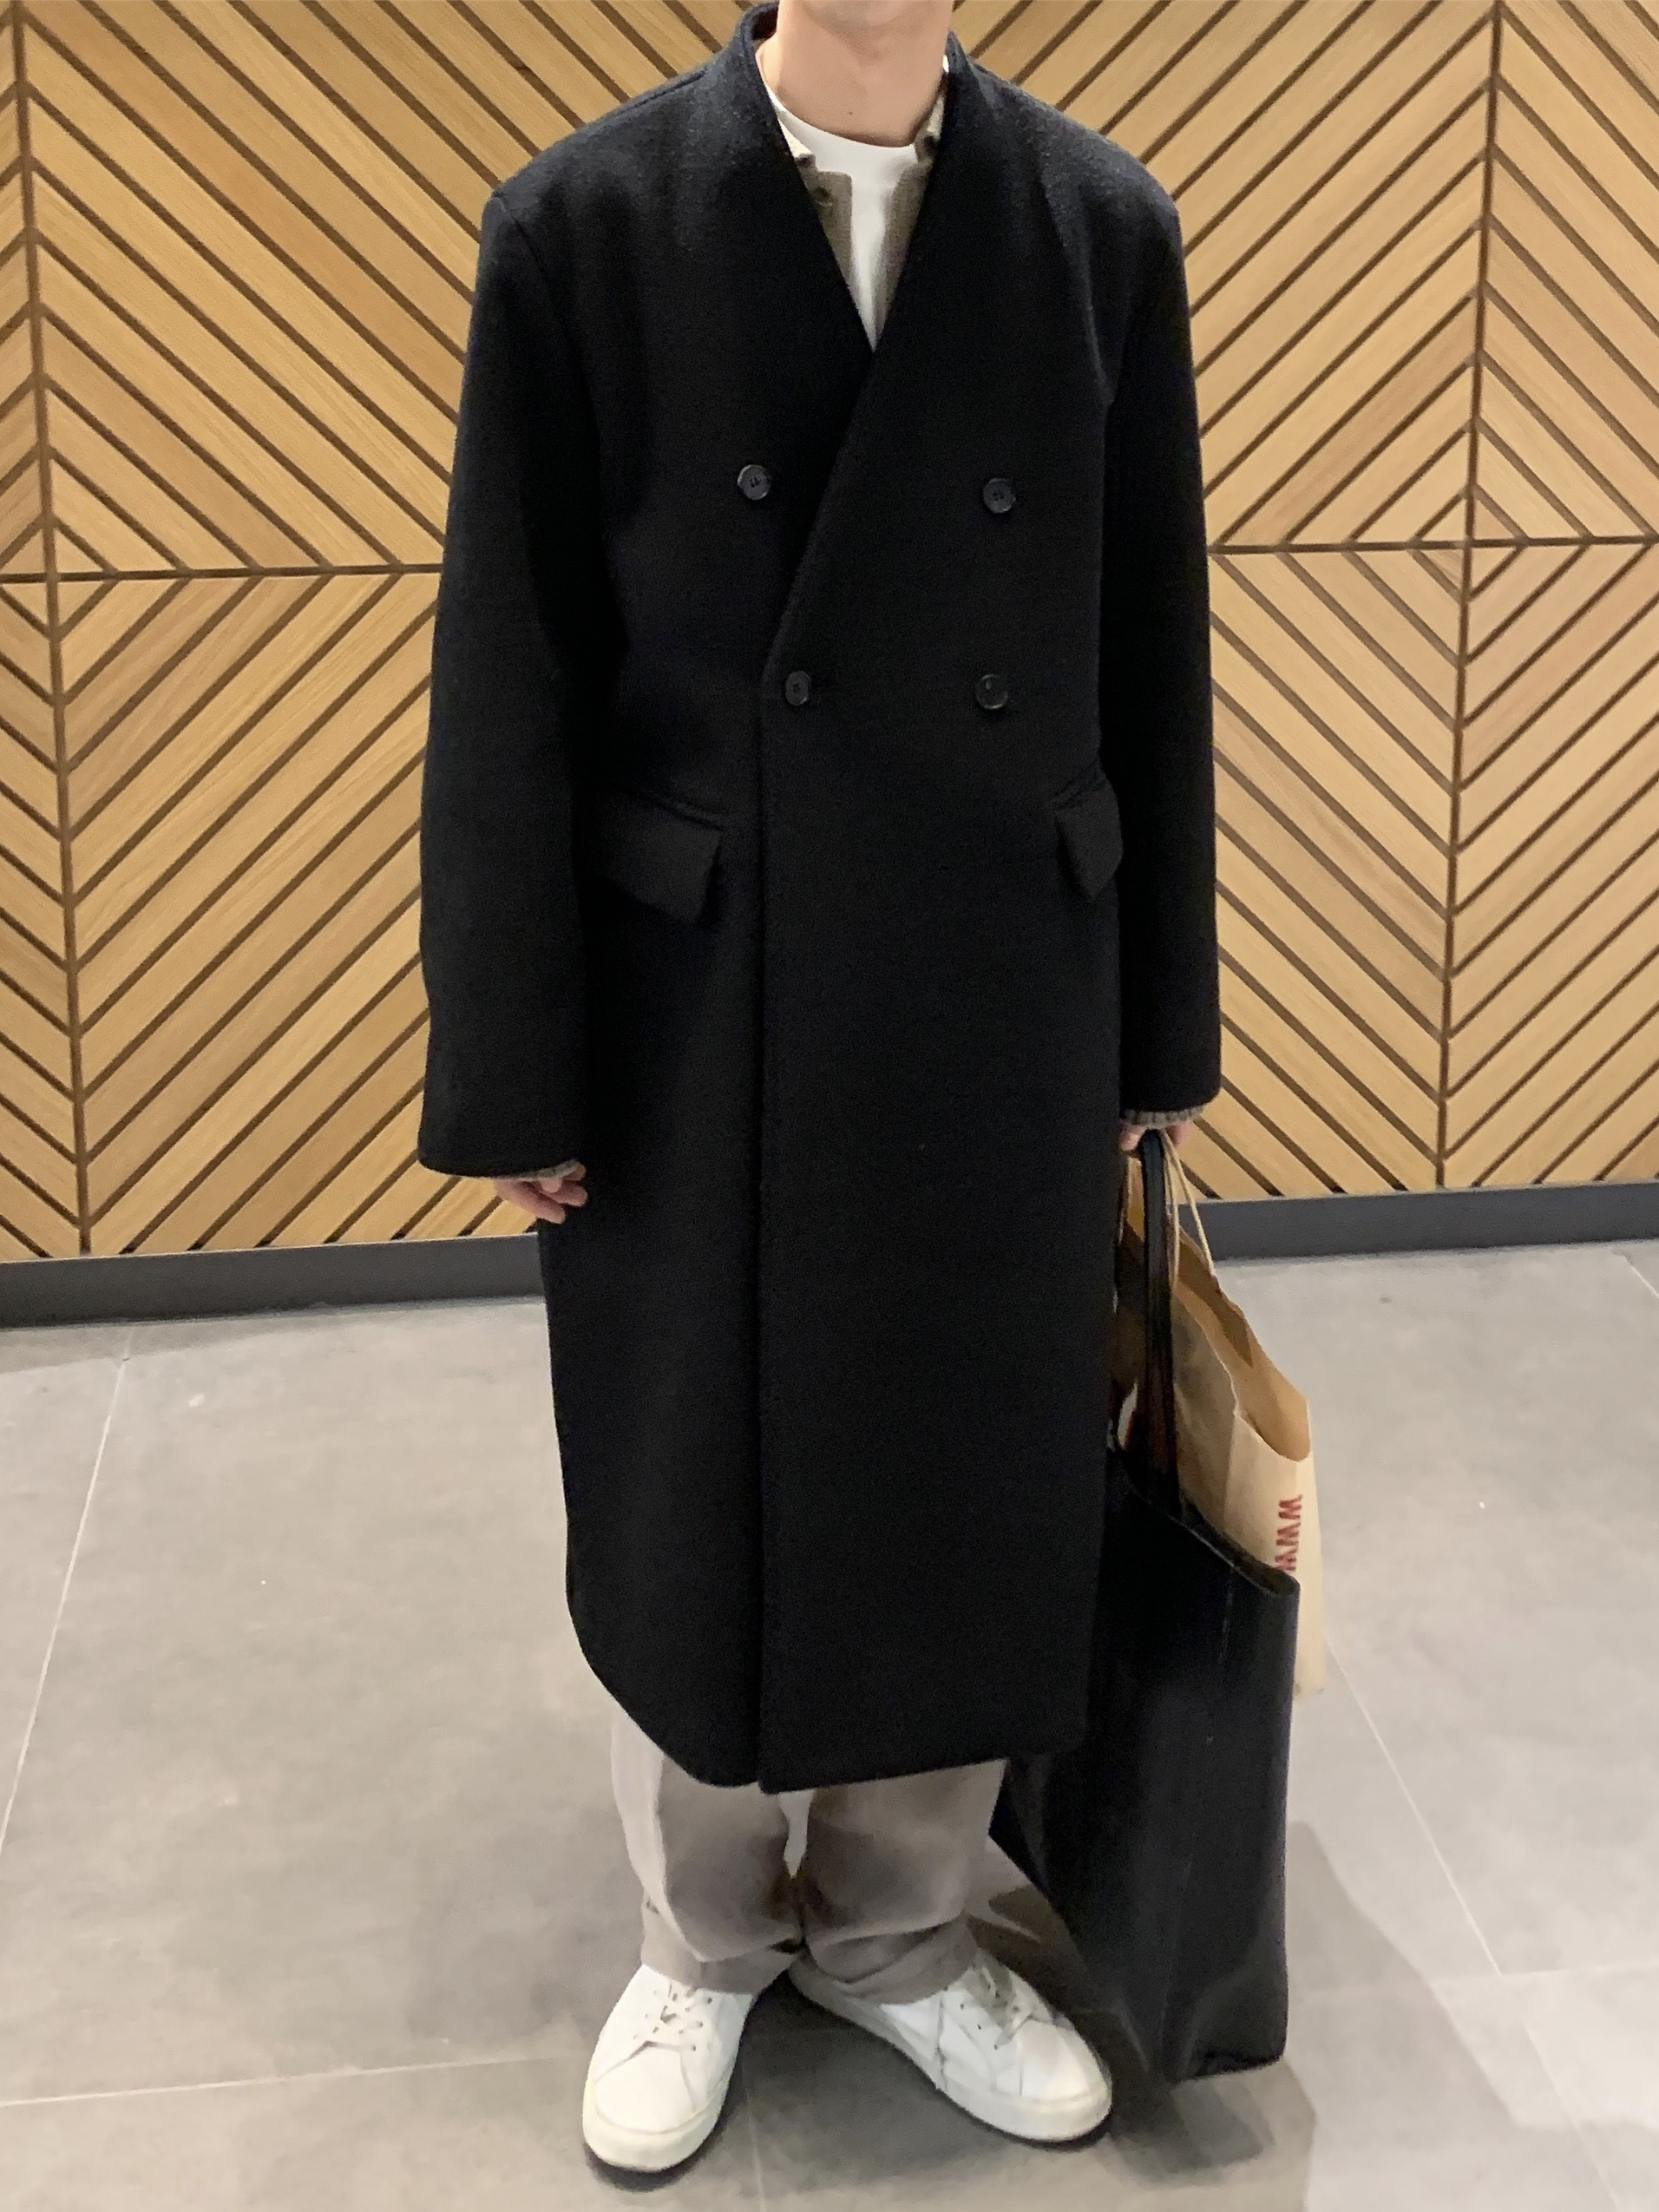 Nt semiover collarless double coat